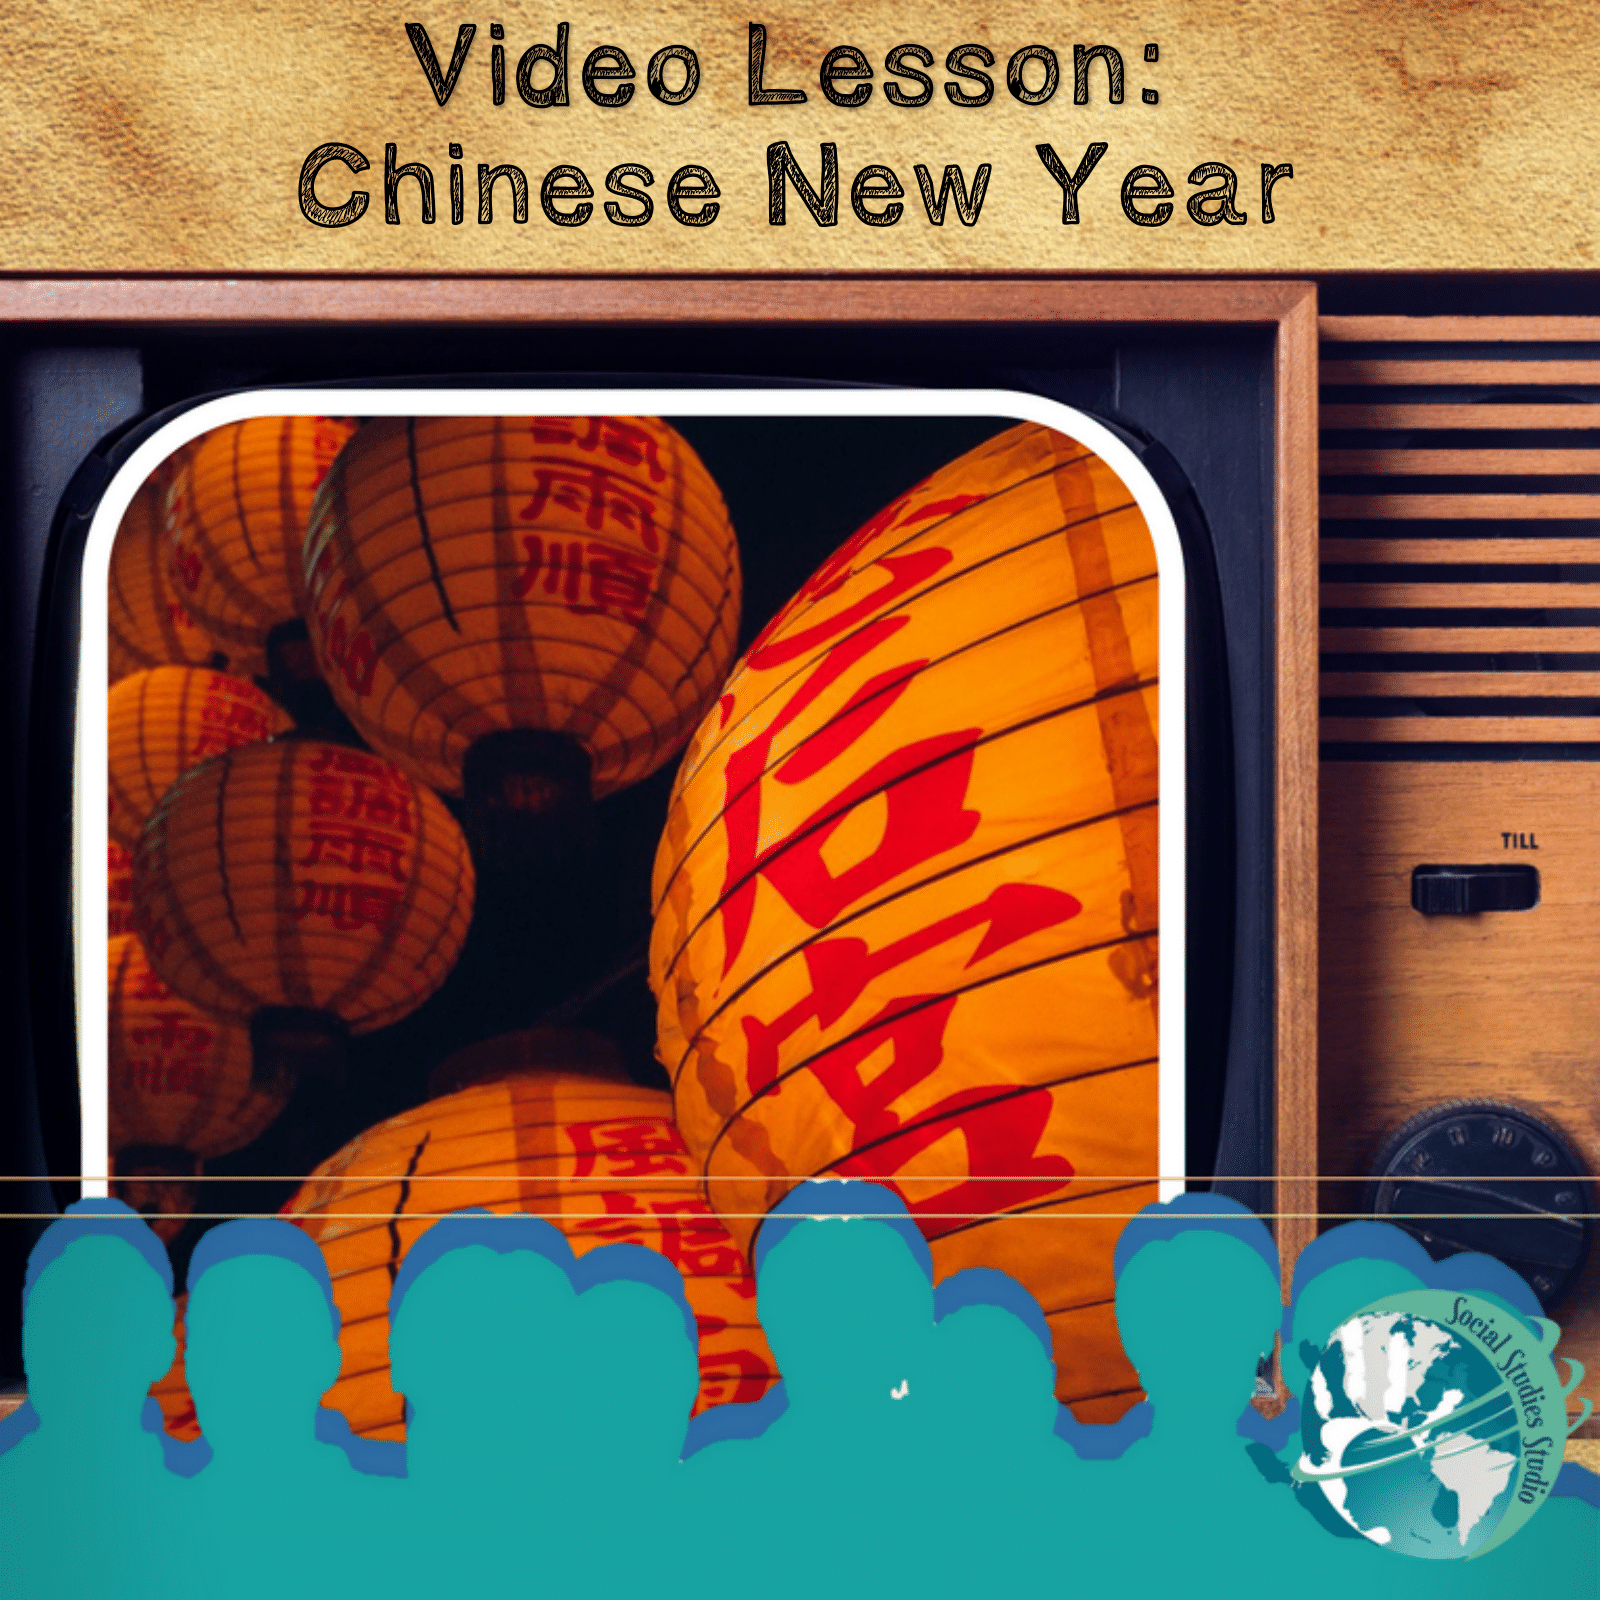 Video Lesson Chinese New Year Chinese New Year Video Lessons